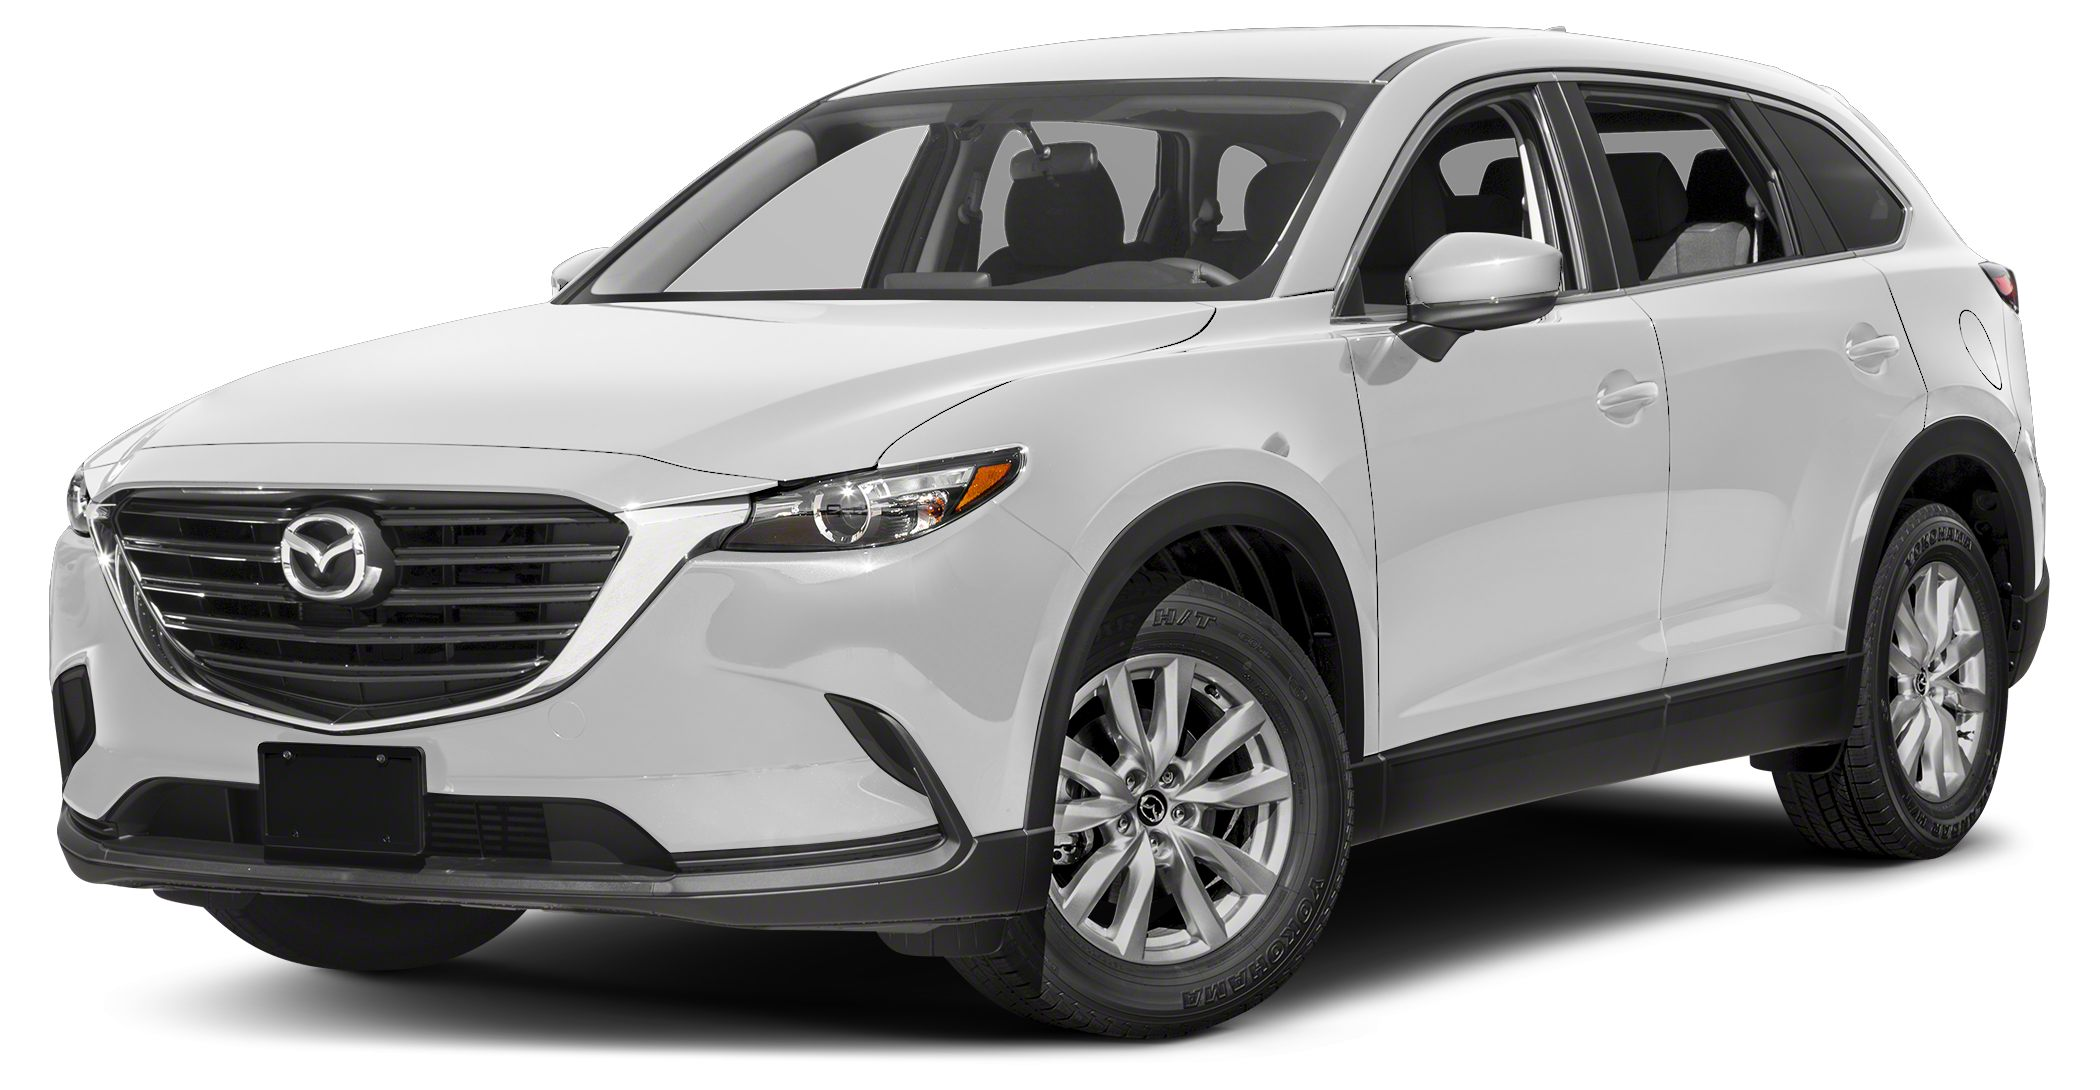 2016 Mazda CX-9 Touring What are you waiting for Introducing the 2016 Mazda Mazda CX-9 Packed wi